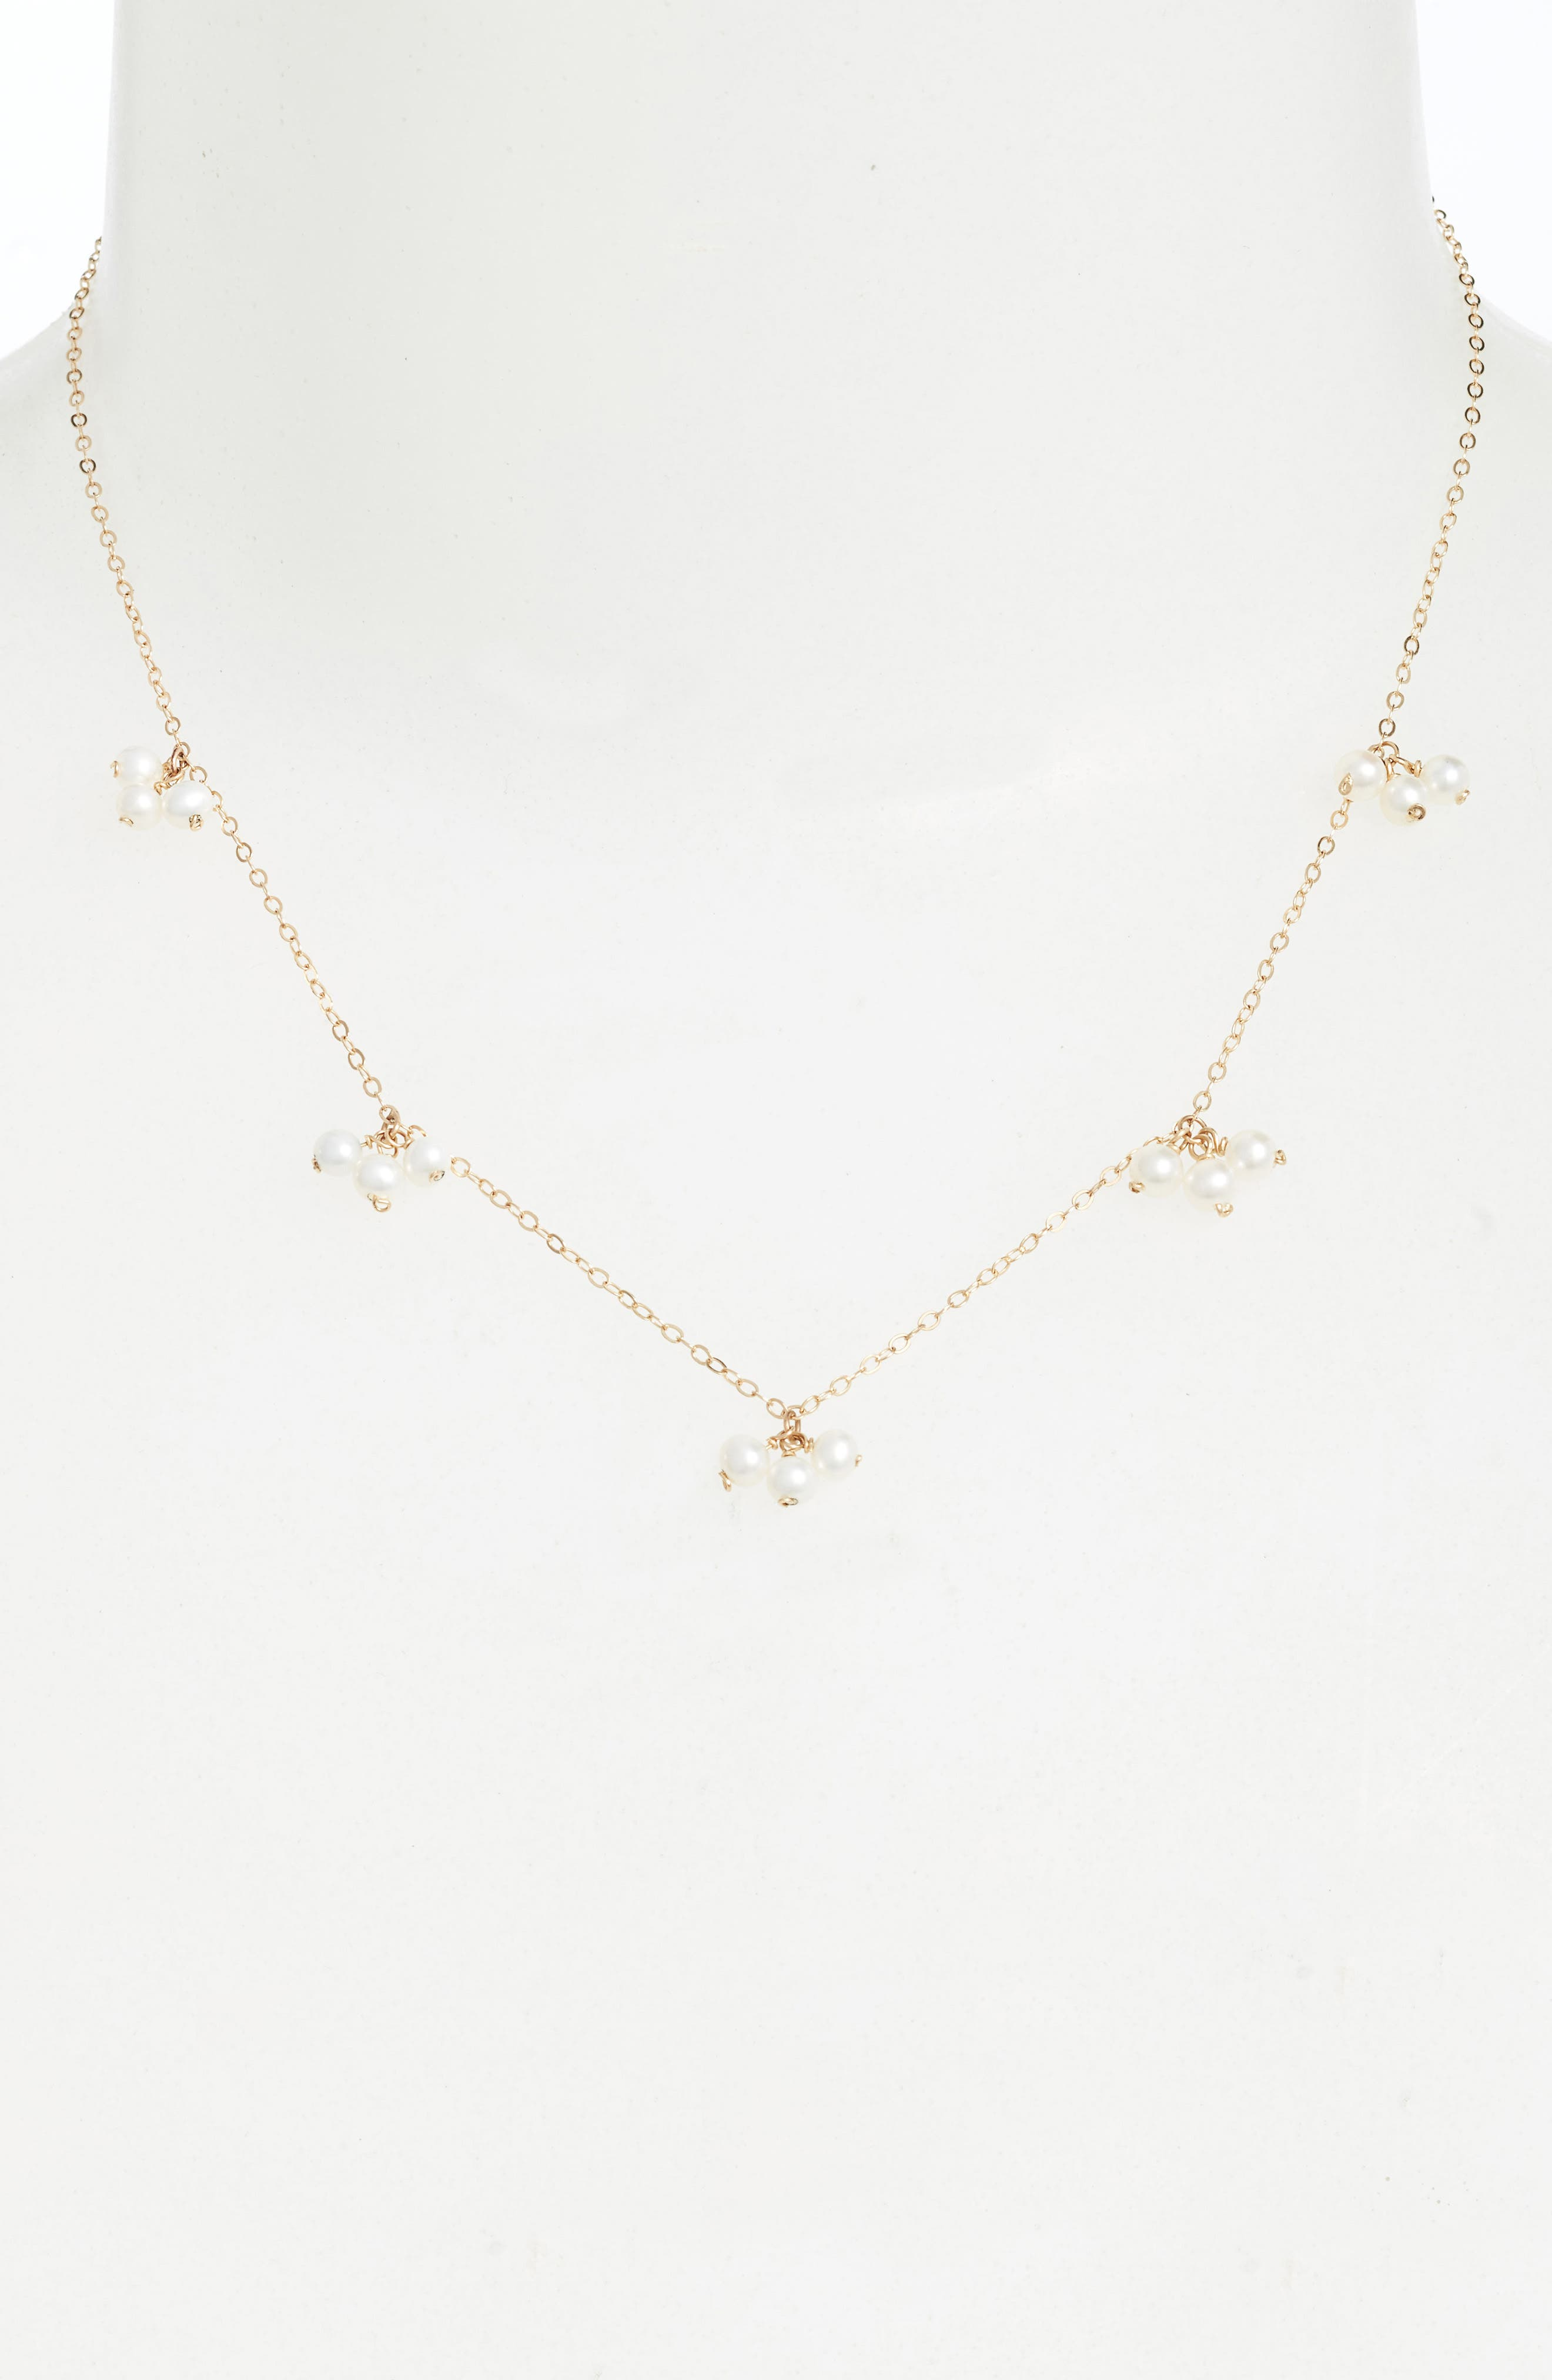 Baby Pearl Trio Gold Station Necklace,                             Alternate thumbnail 2, color,                             YELLOW GOLD/ WHITE PEARL